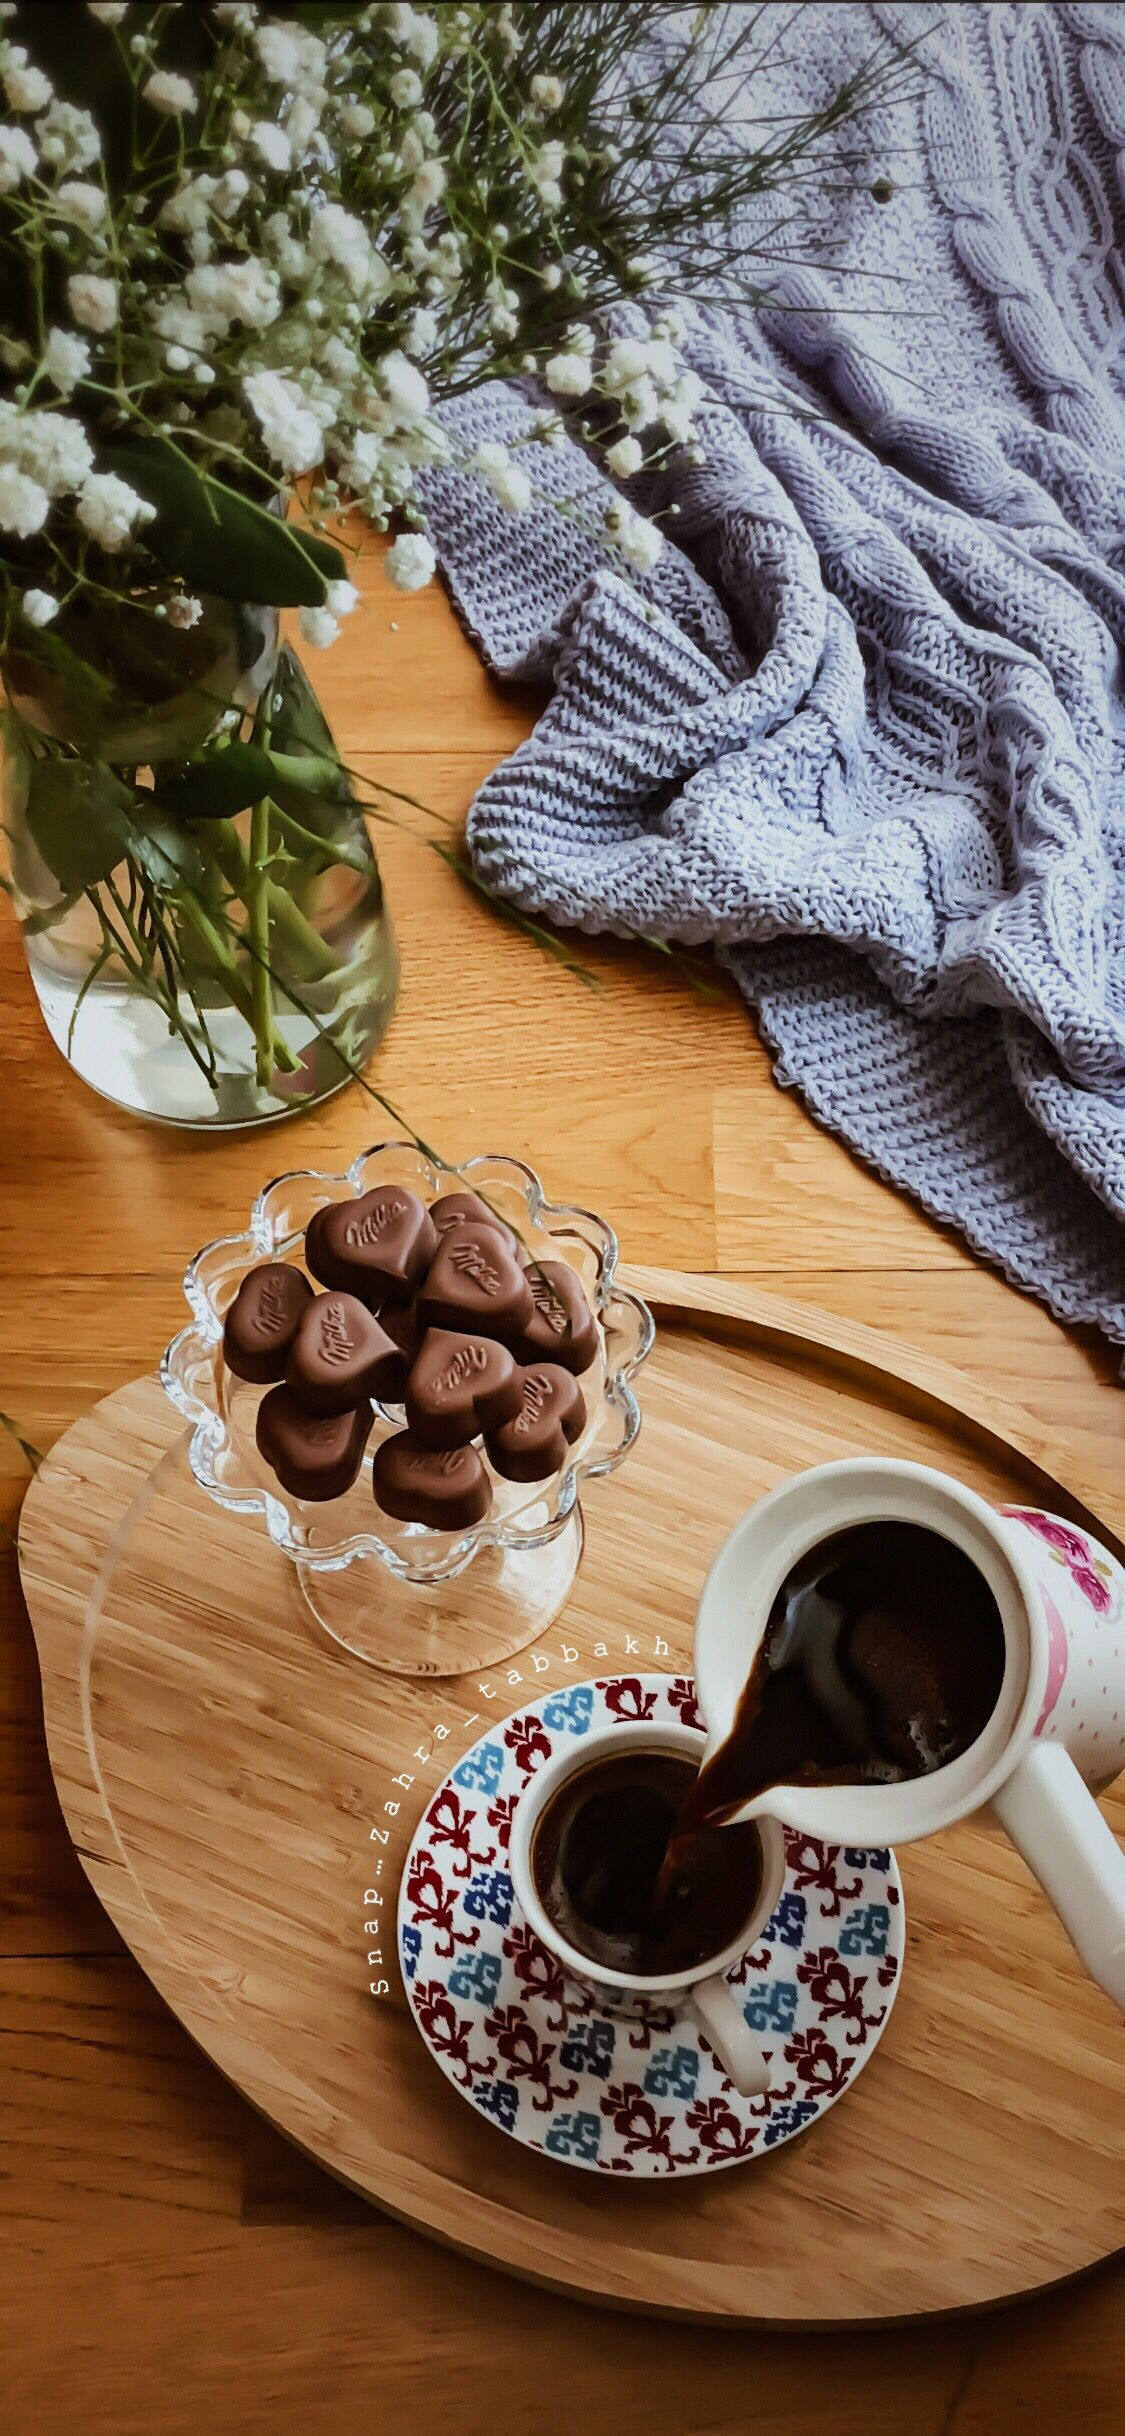 Pin By Zahra Tabbakh On Pics Coffee Love Food And Drink Coffee